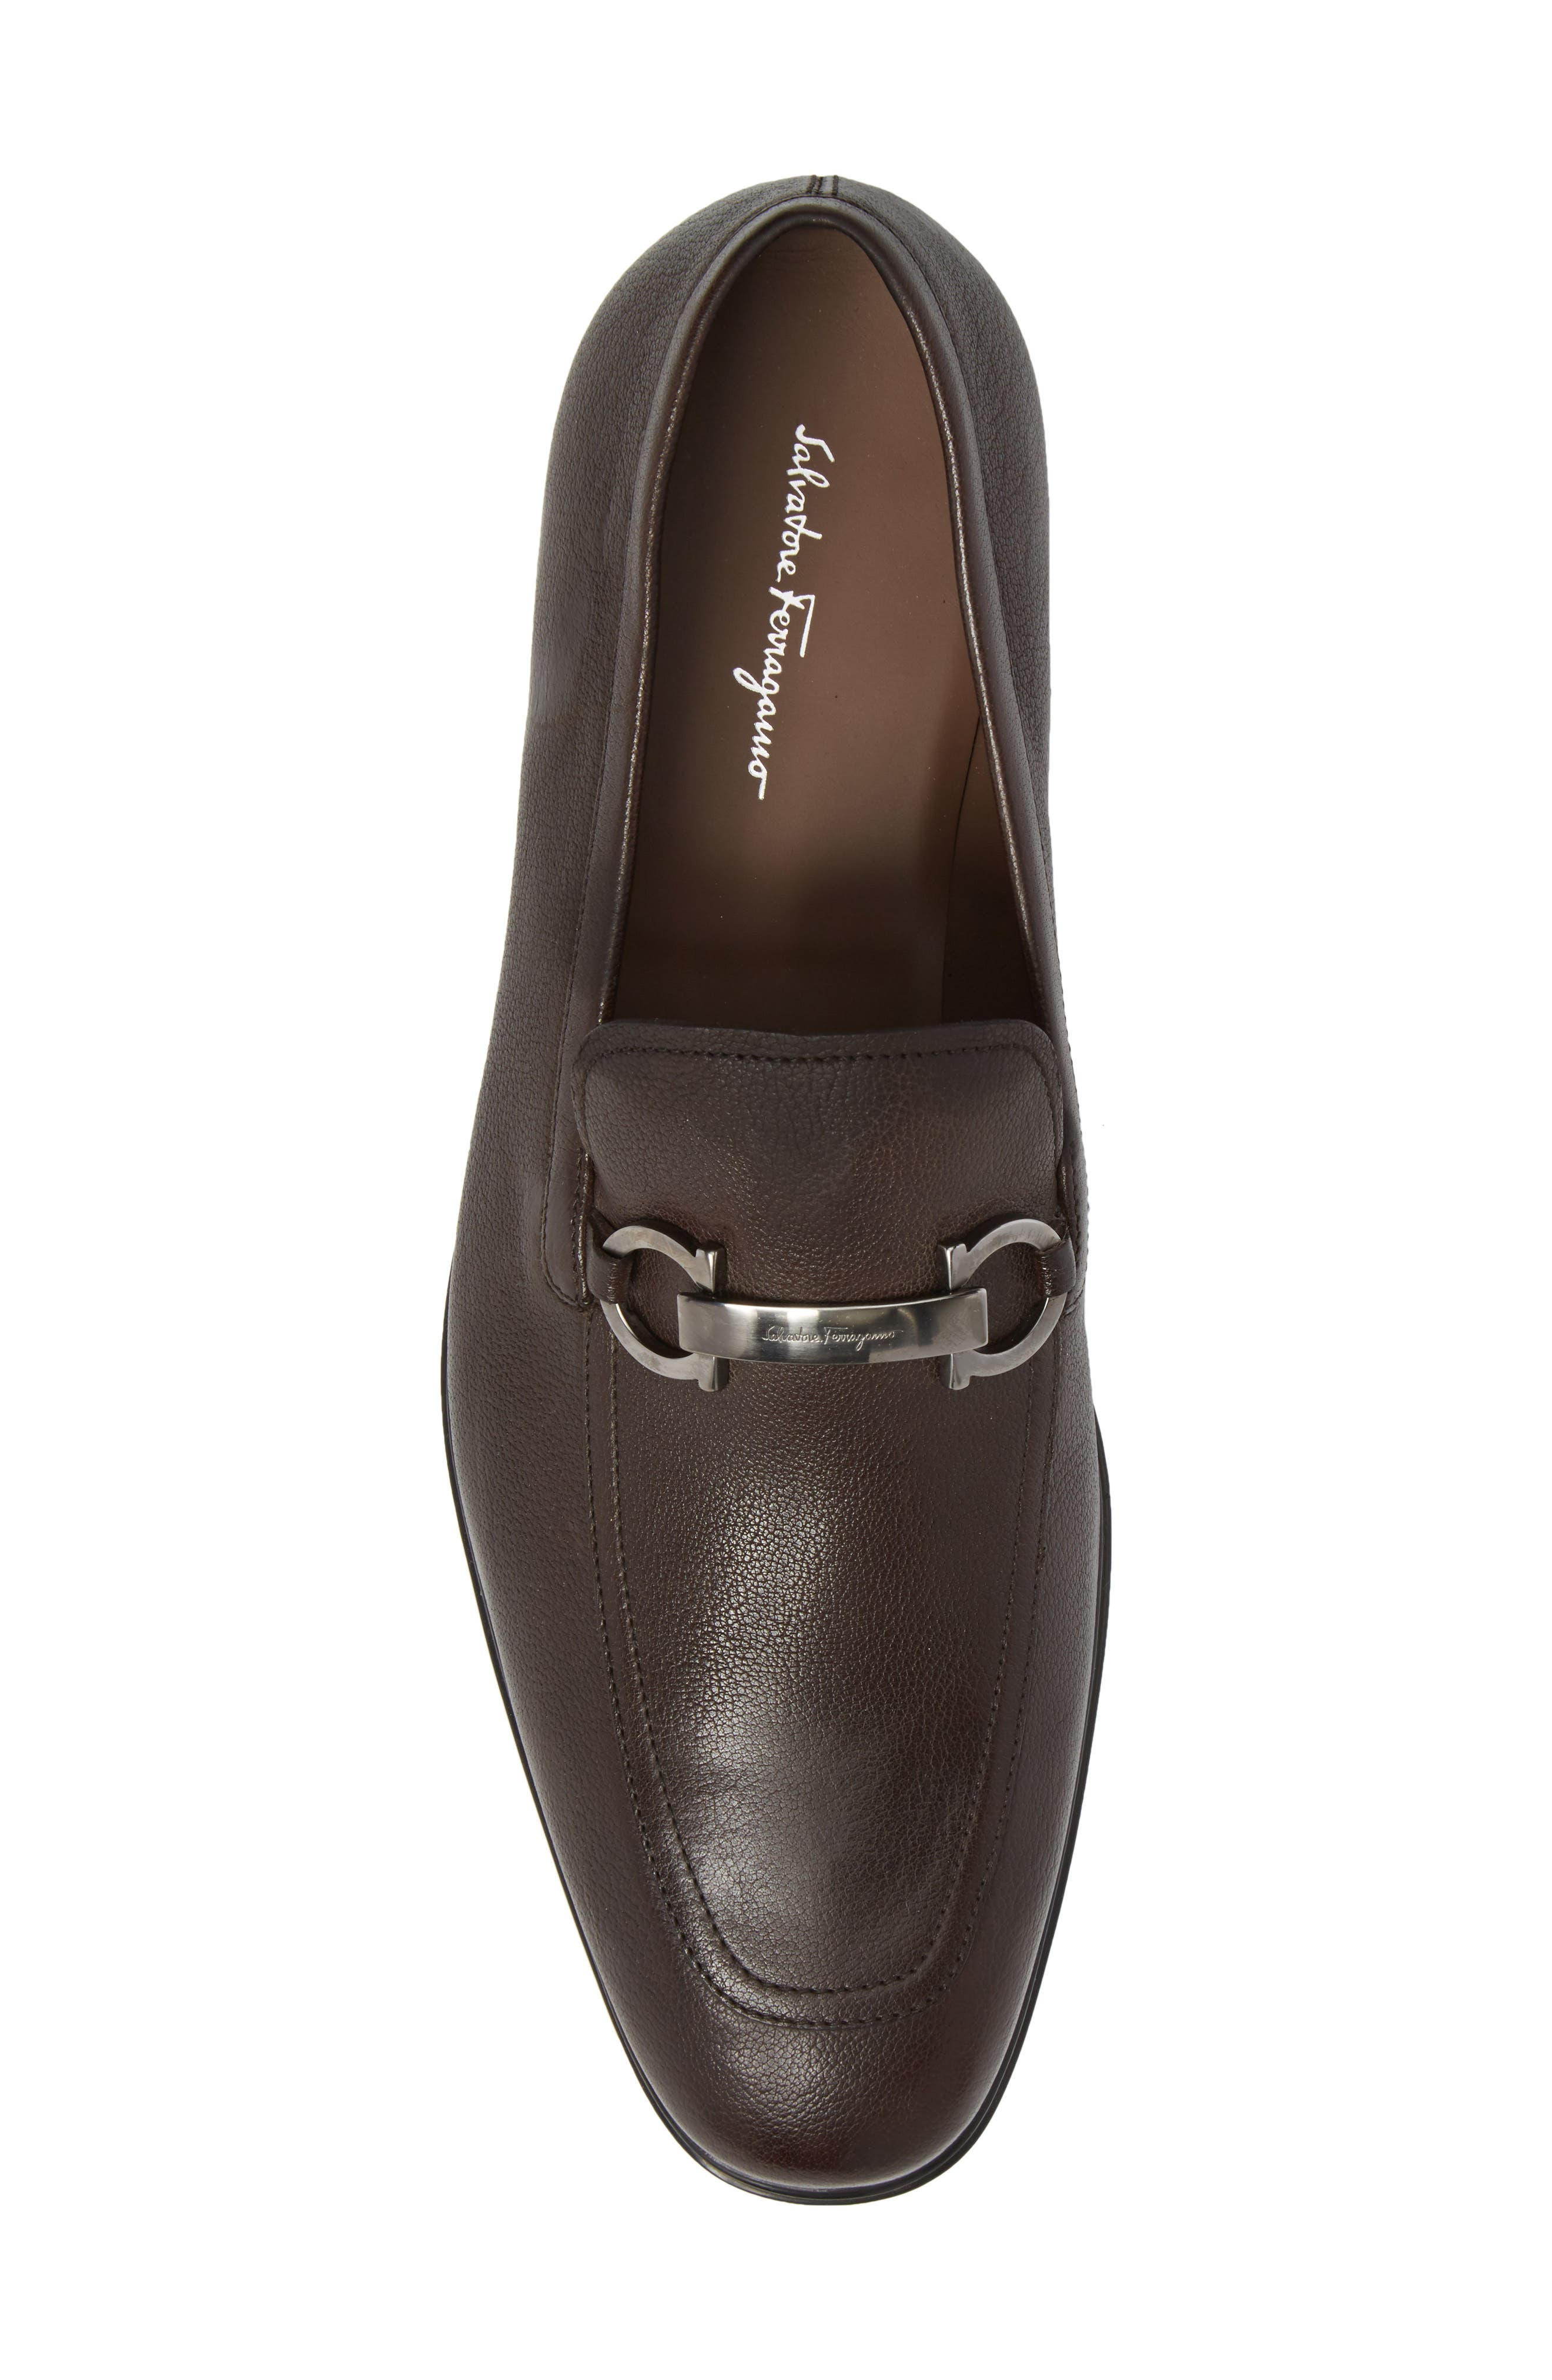 Borges Apron Toe Loafer,                             Alternate thumbnail 5, color,                             Brown Leather